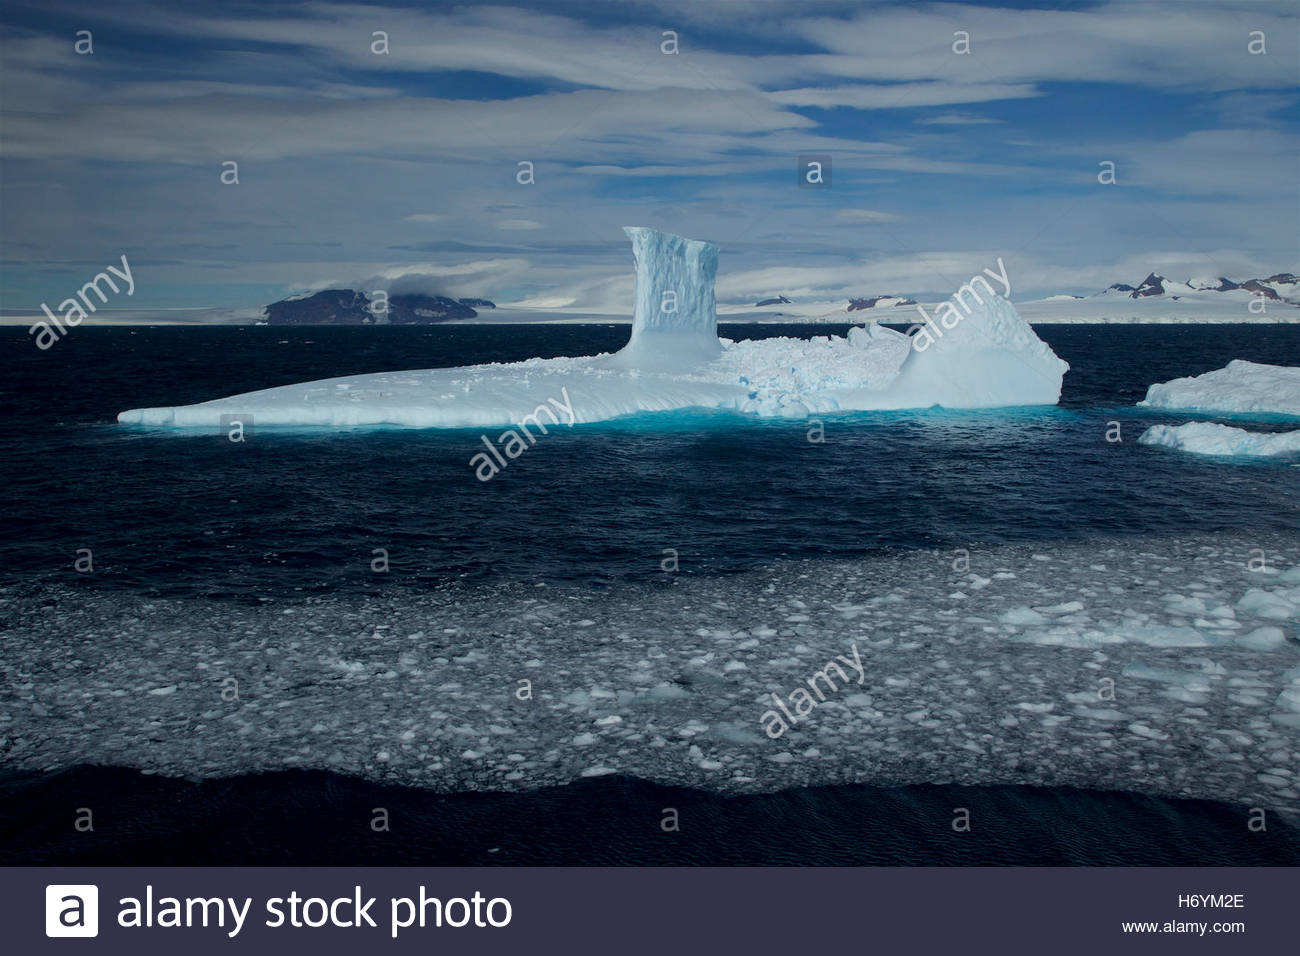 Iceberg with tower, shaped like a submarine, in the Antarctic Sound. - Stock Image